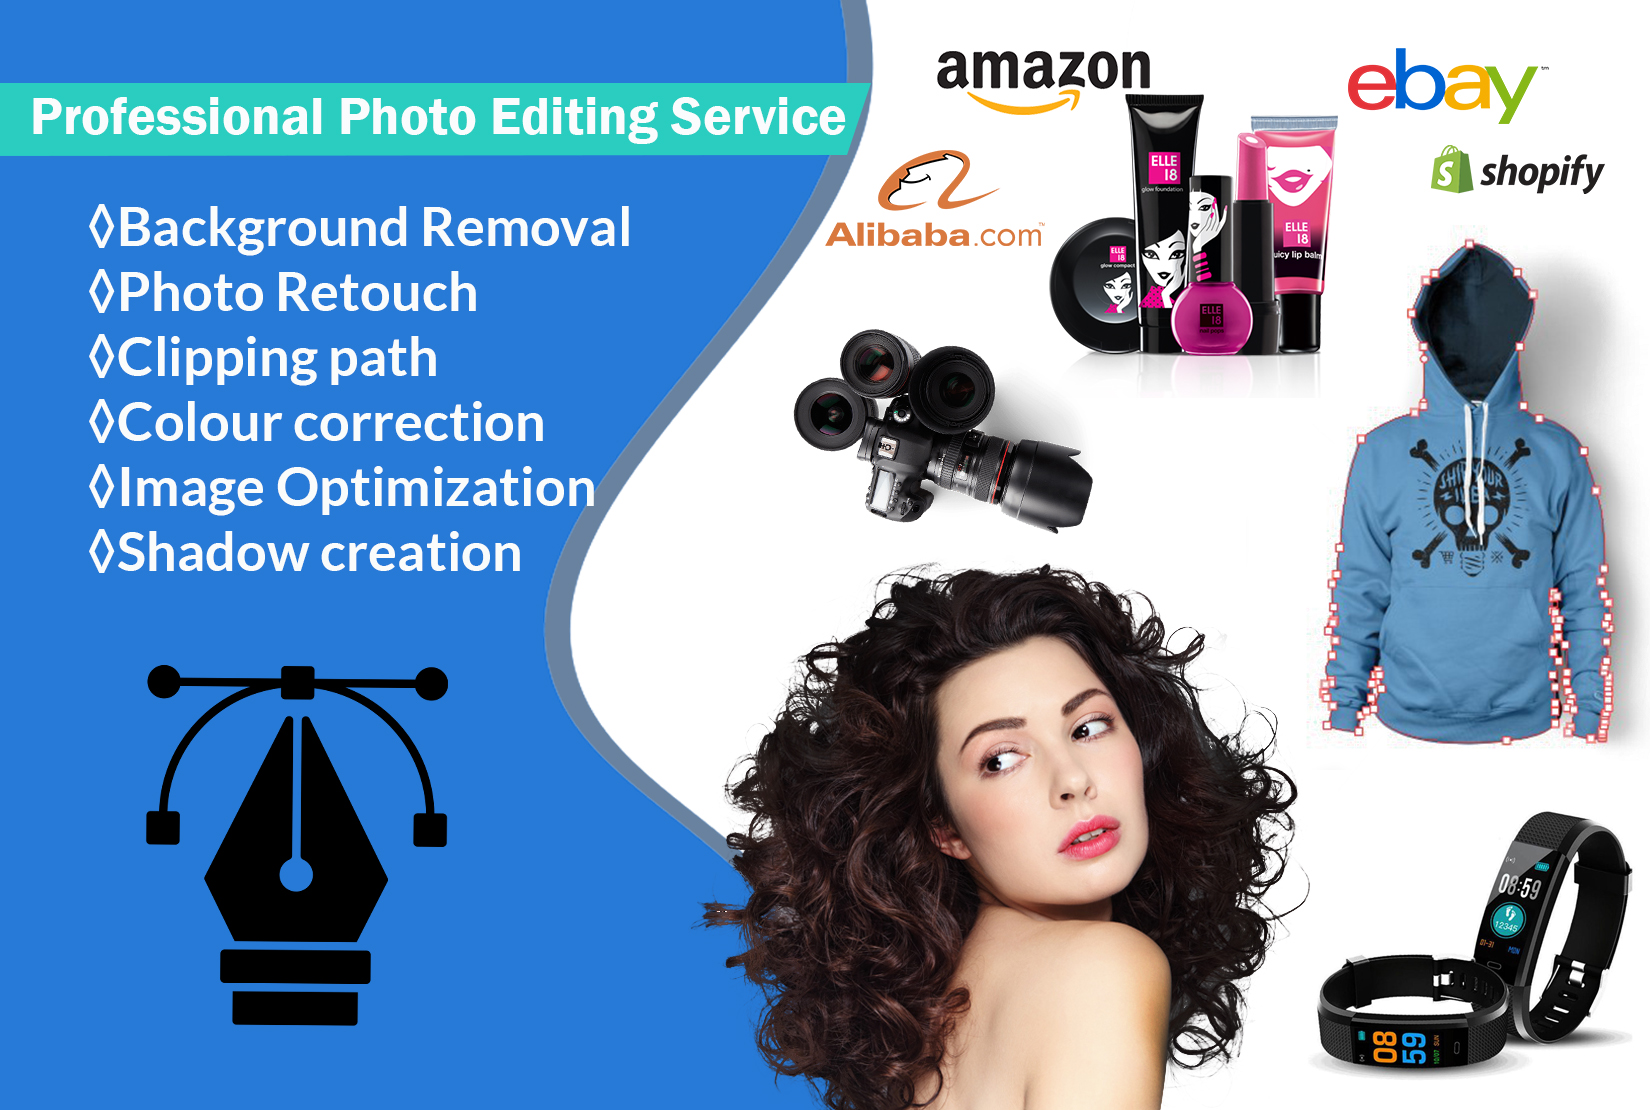 I will do professional photo editing,  retouching,  background removal